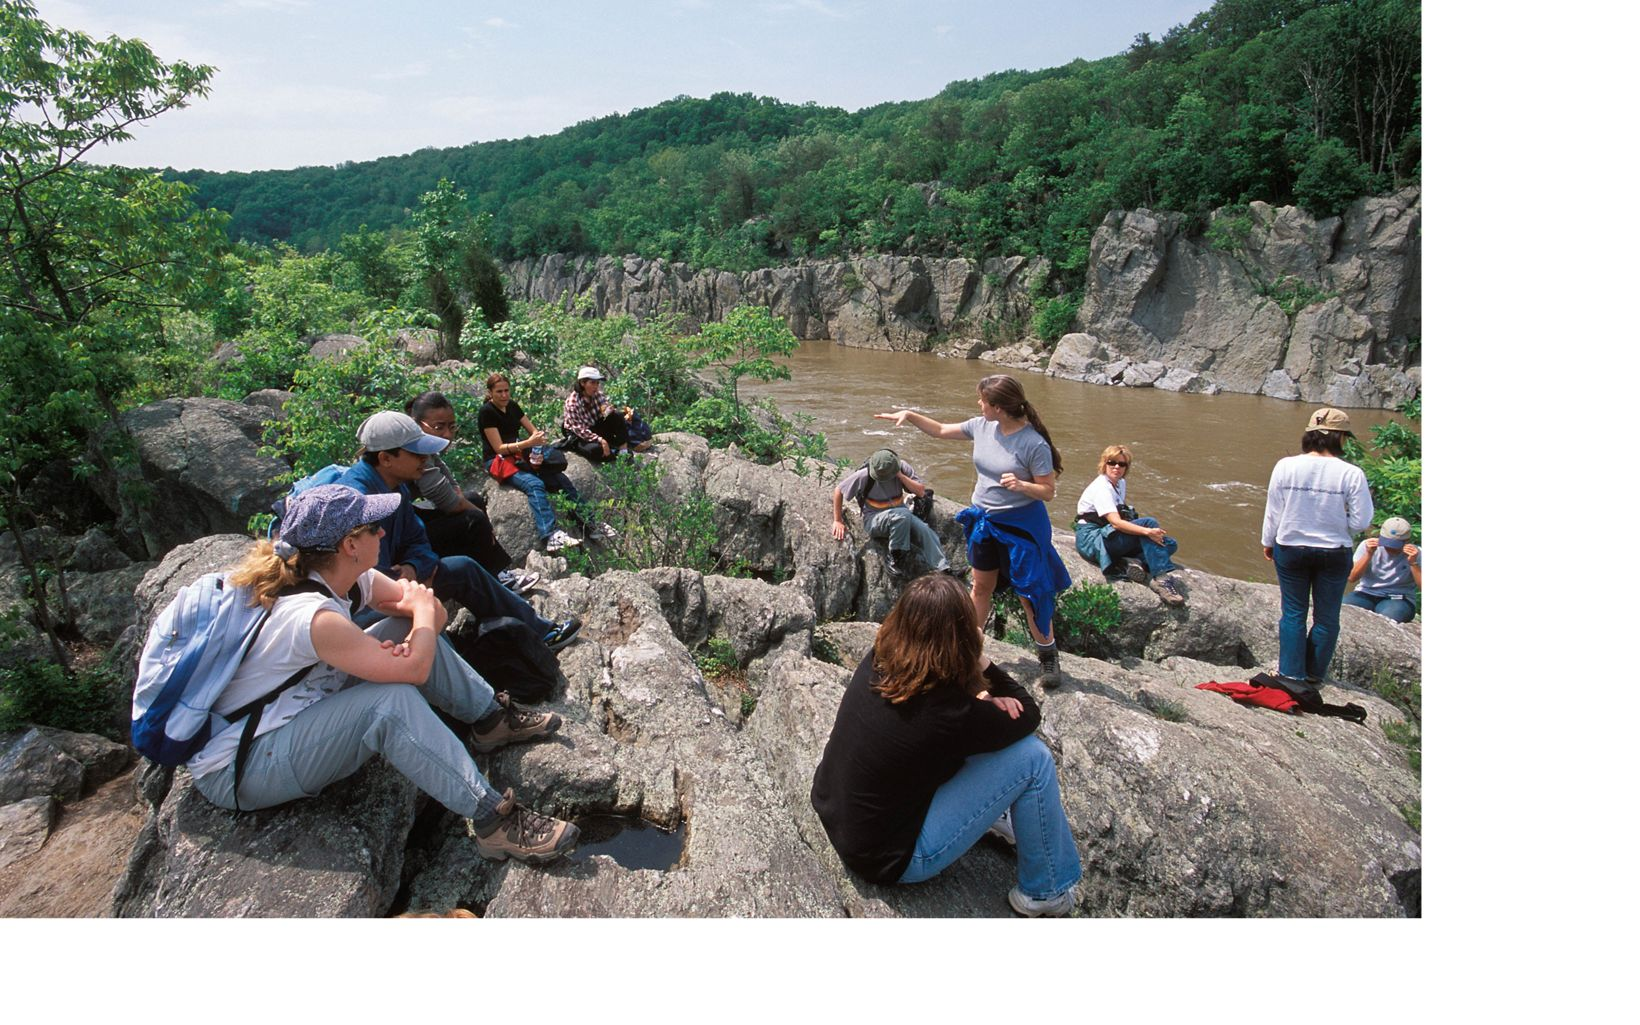 MD/DC staff enjoy an outing at the Potomac Gorge.